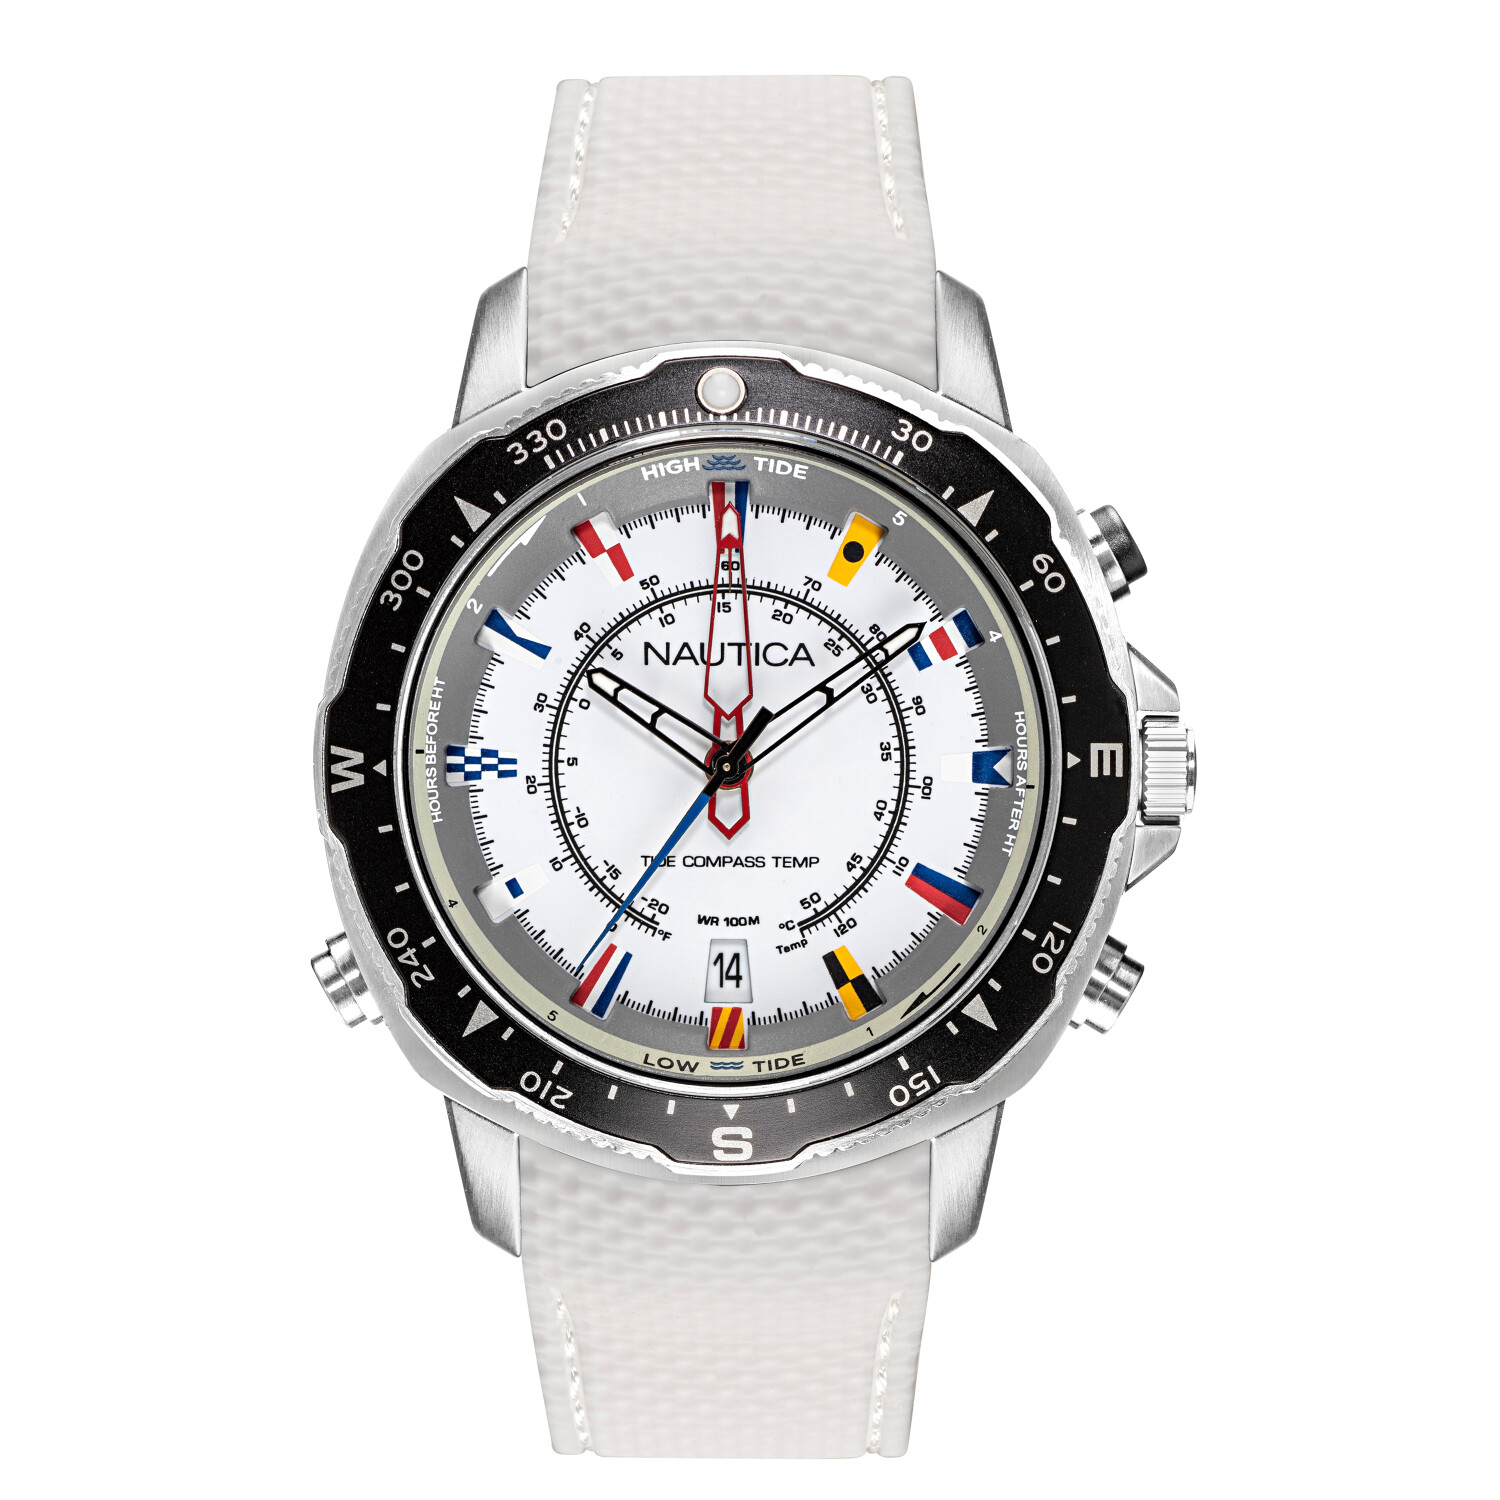 Nautica Watch NAPSSP903 Soledad South, Analog, Water Resistant, Compass, Temperature Indicator, Signal Flag Indexes, White